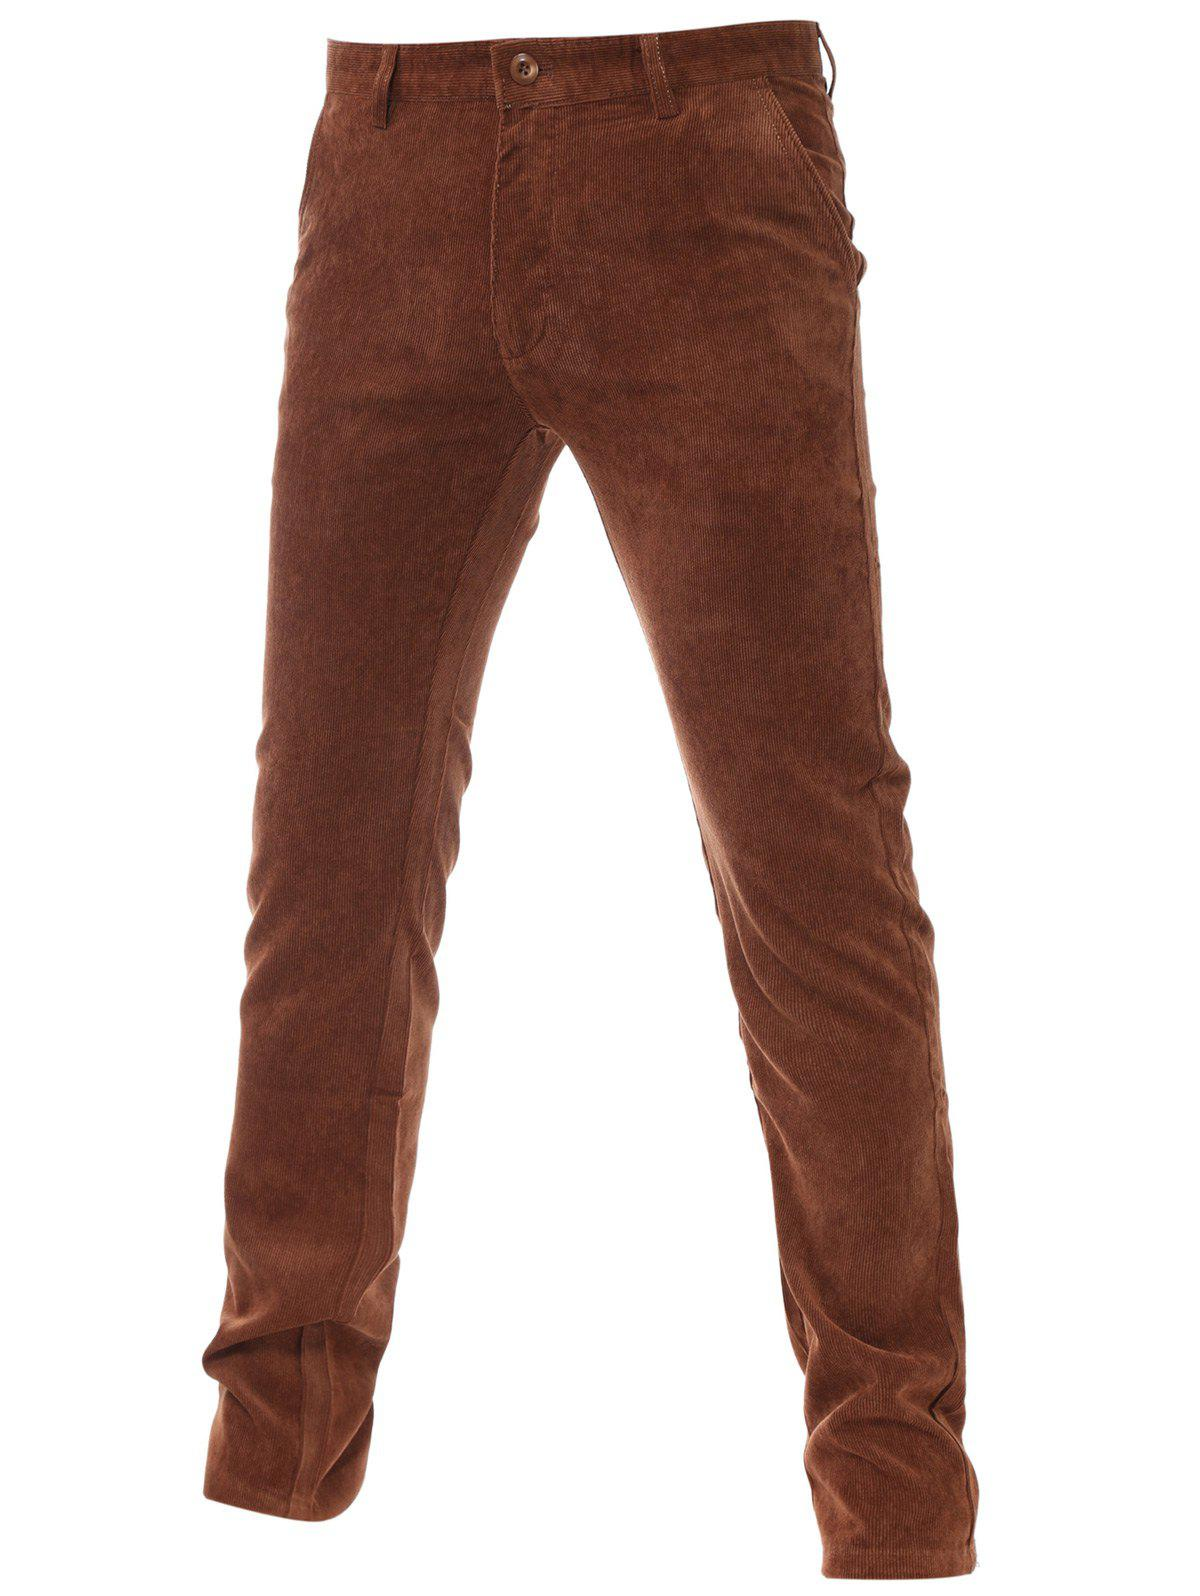 New Flocking Lining Zipper Fly Plain Corduroy Pants